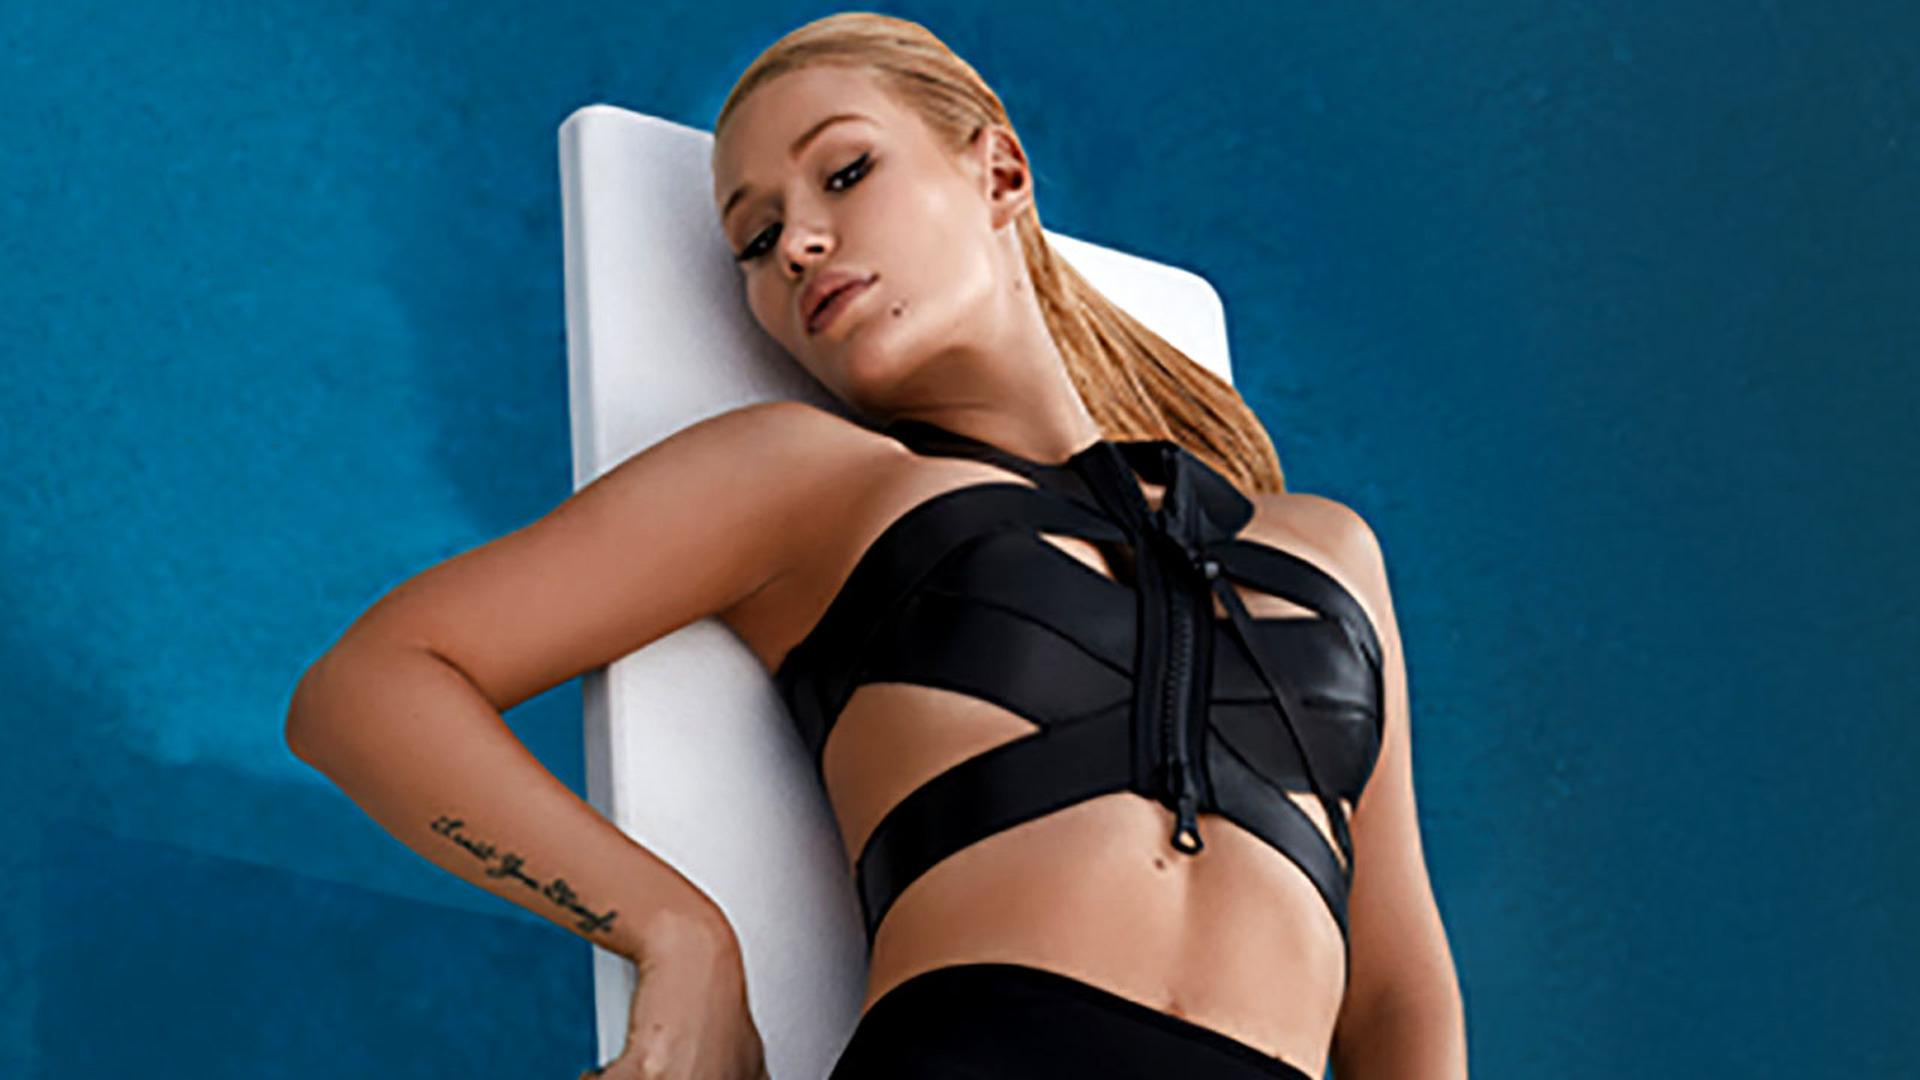 Iggy Azalea Flaunts Toned Bikini Bod for #Legends Magazine